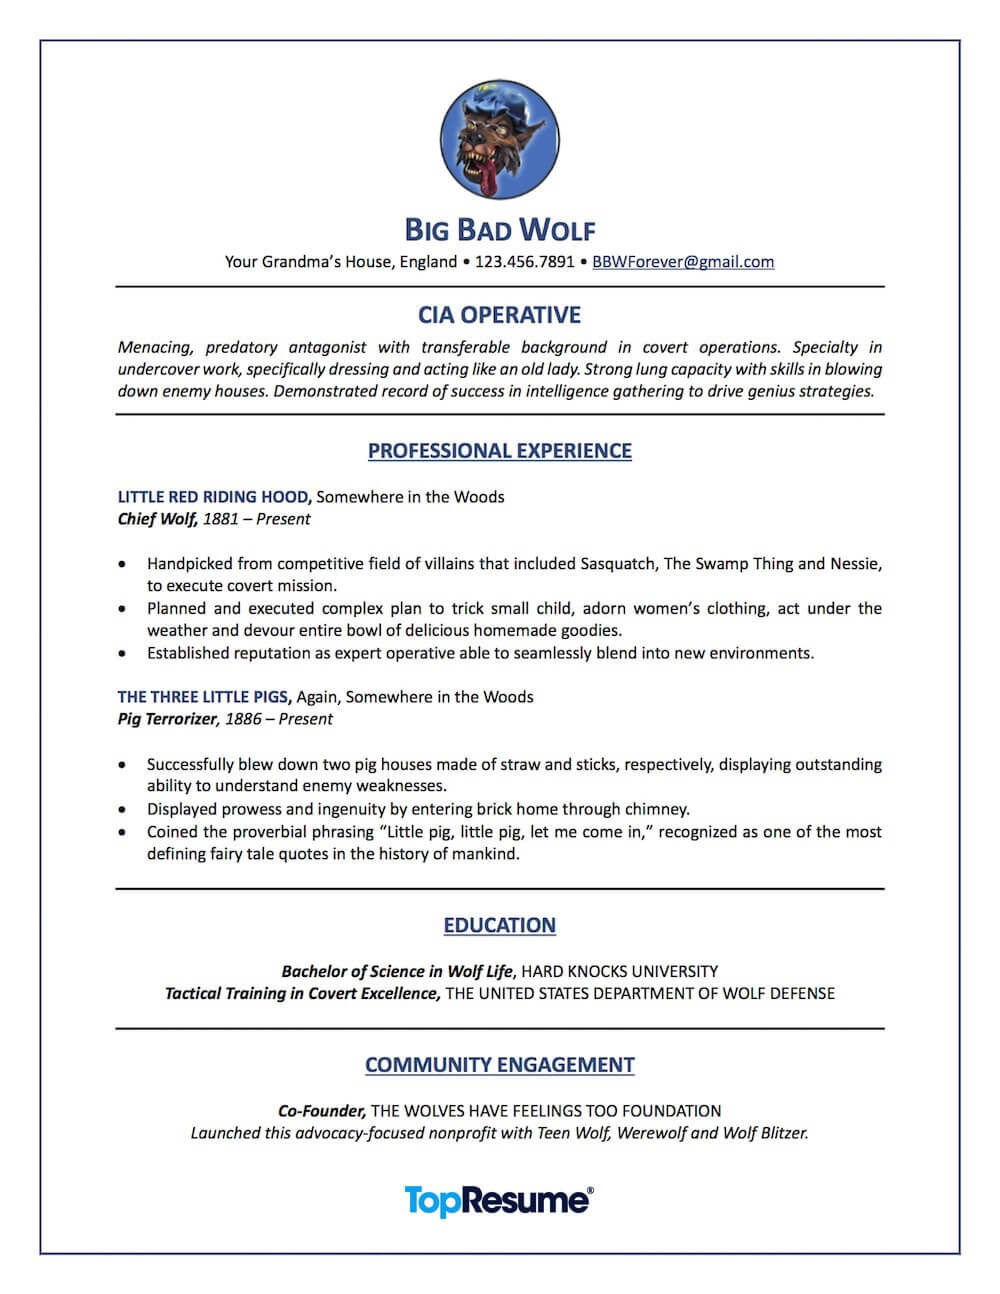 Career Change Resume Sample Big Bad Wolf